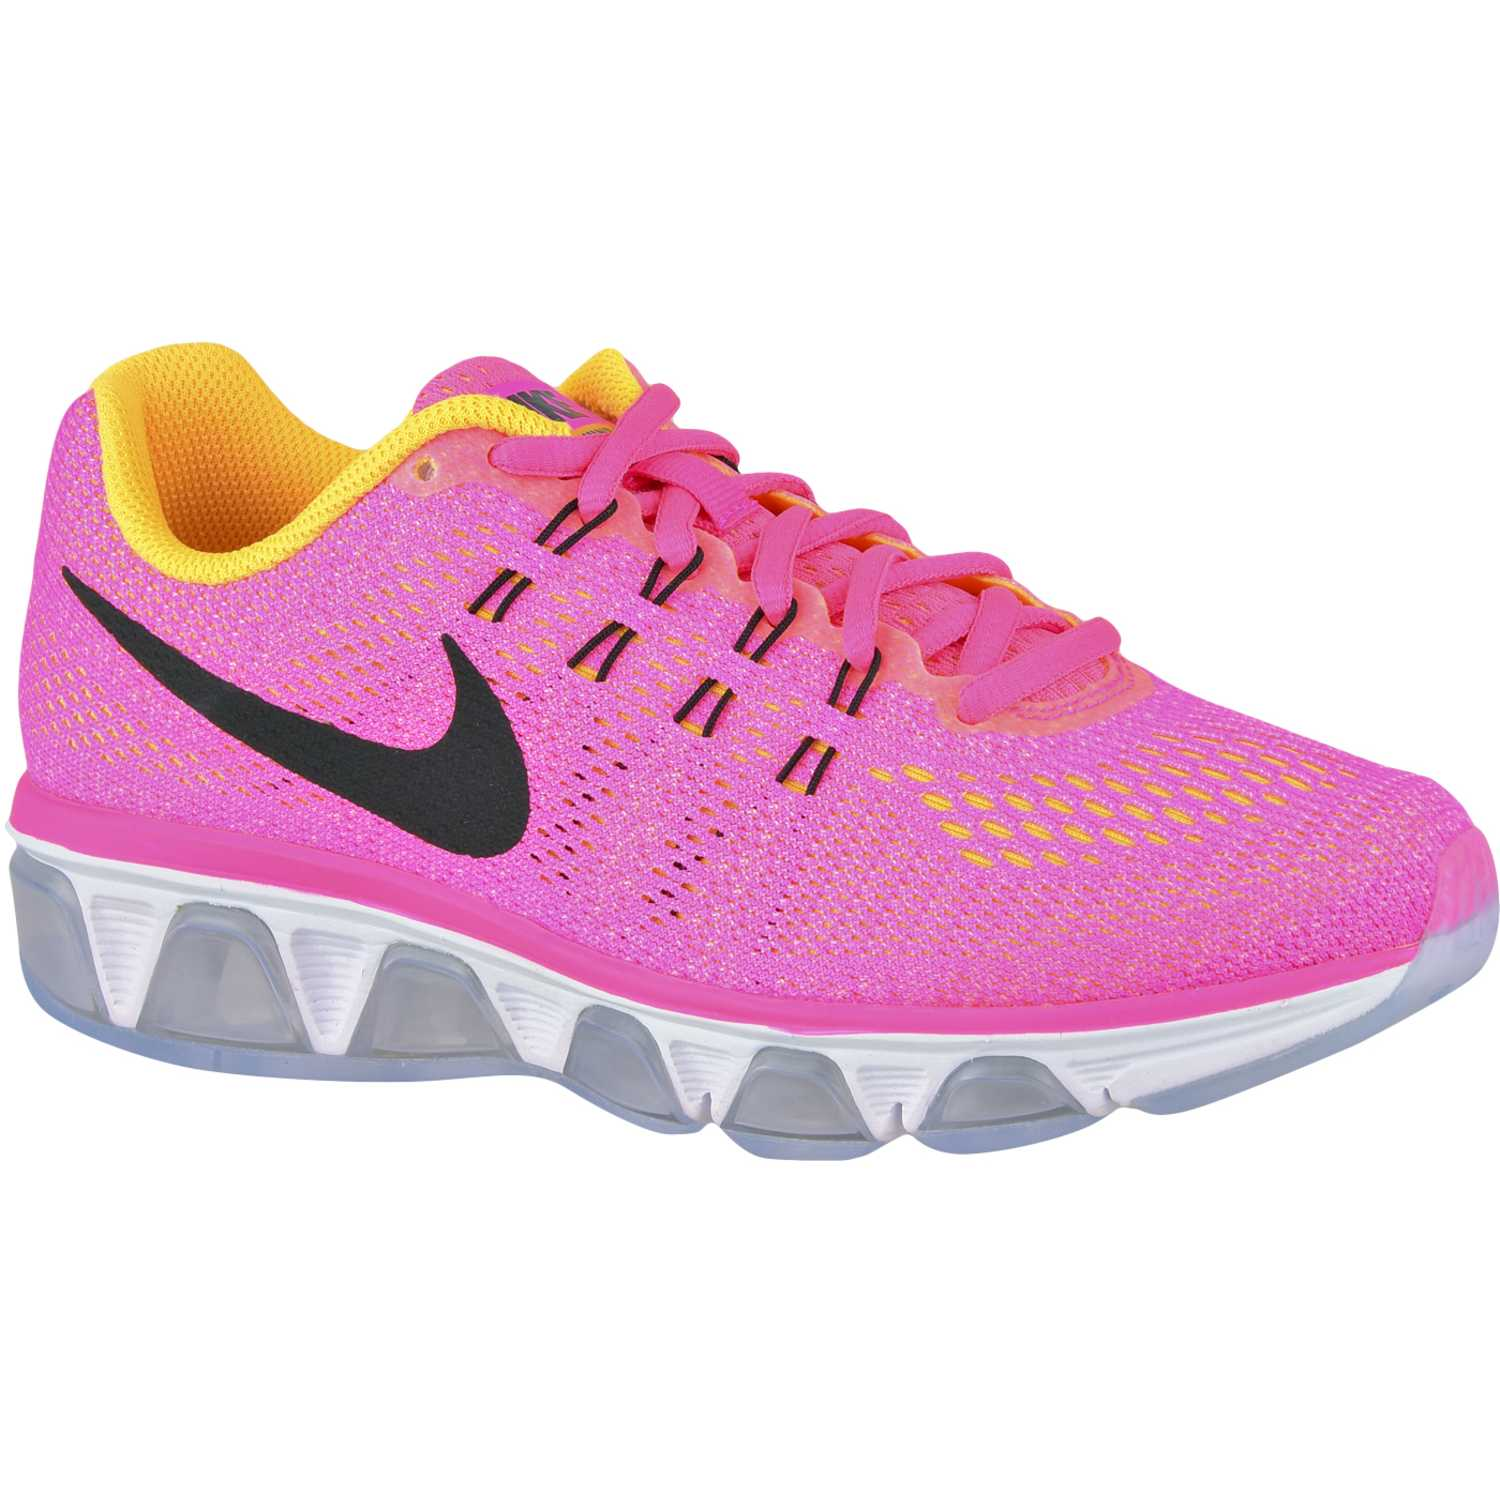 cheap for discount 7cea8 9c0b0 Zapatilla de Mujer Nike Fucsia wmns air max tailwind 8